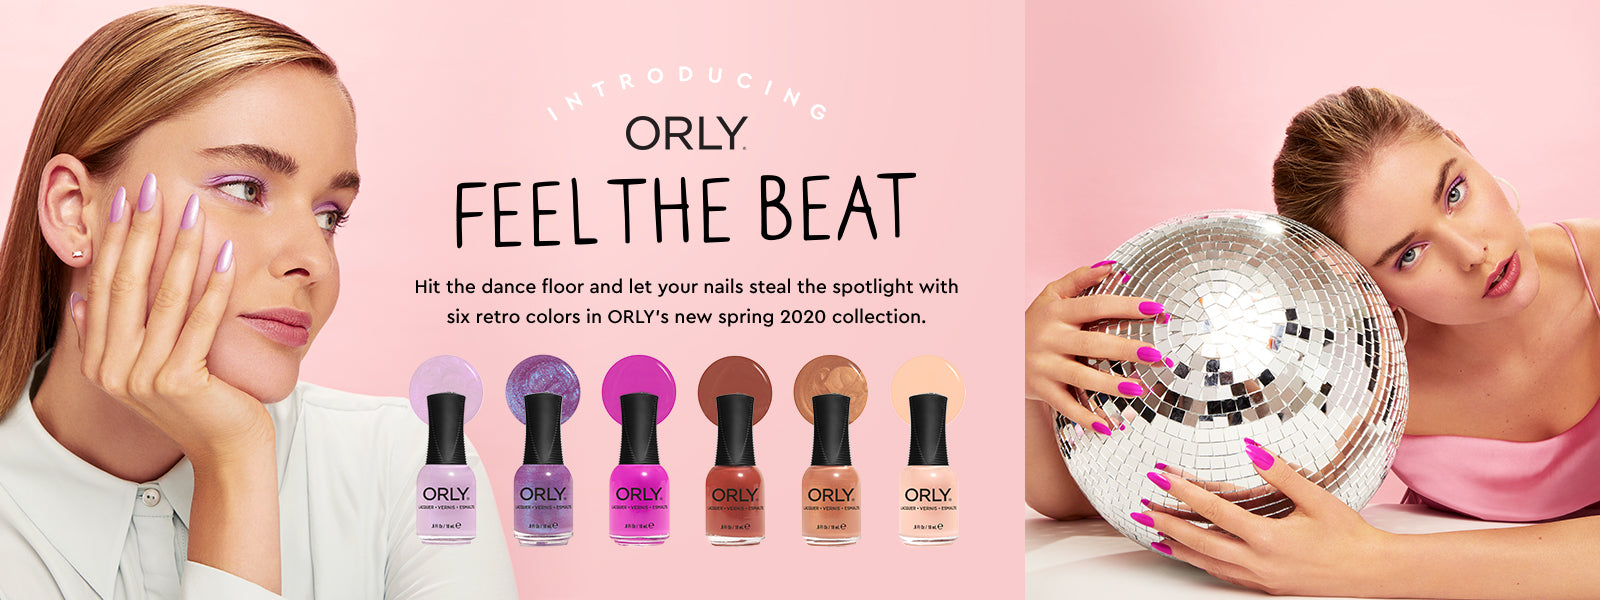 ORLY Feel The Beat Spring 2020